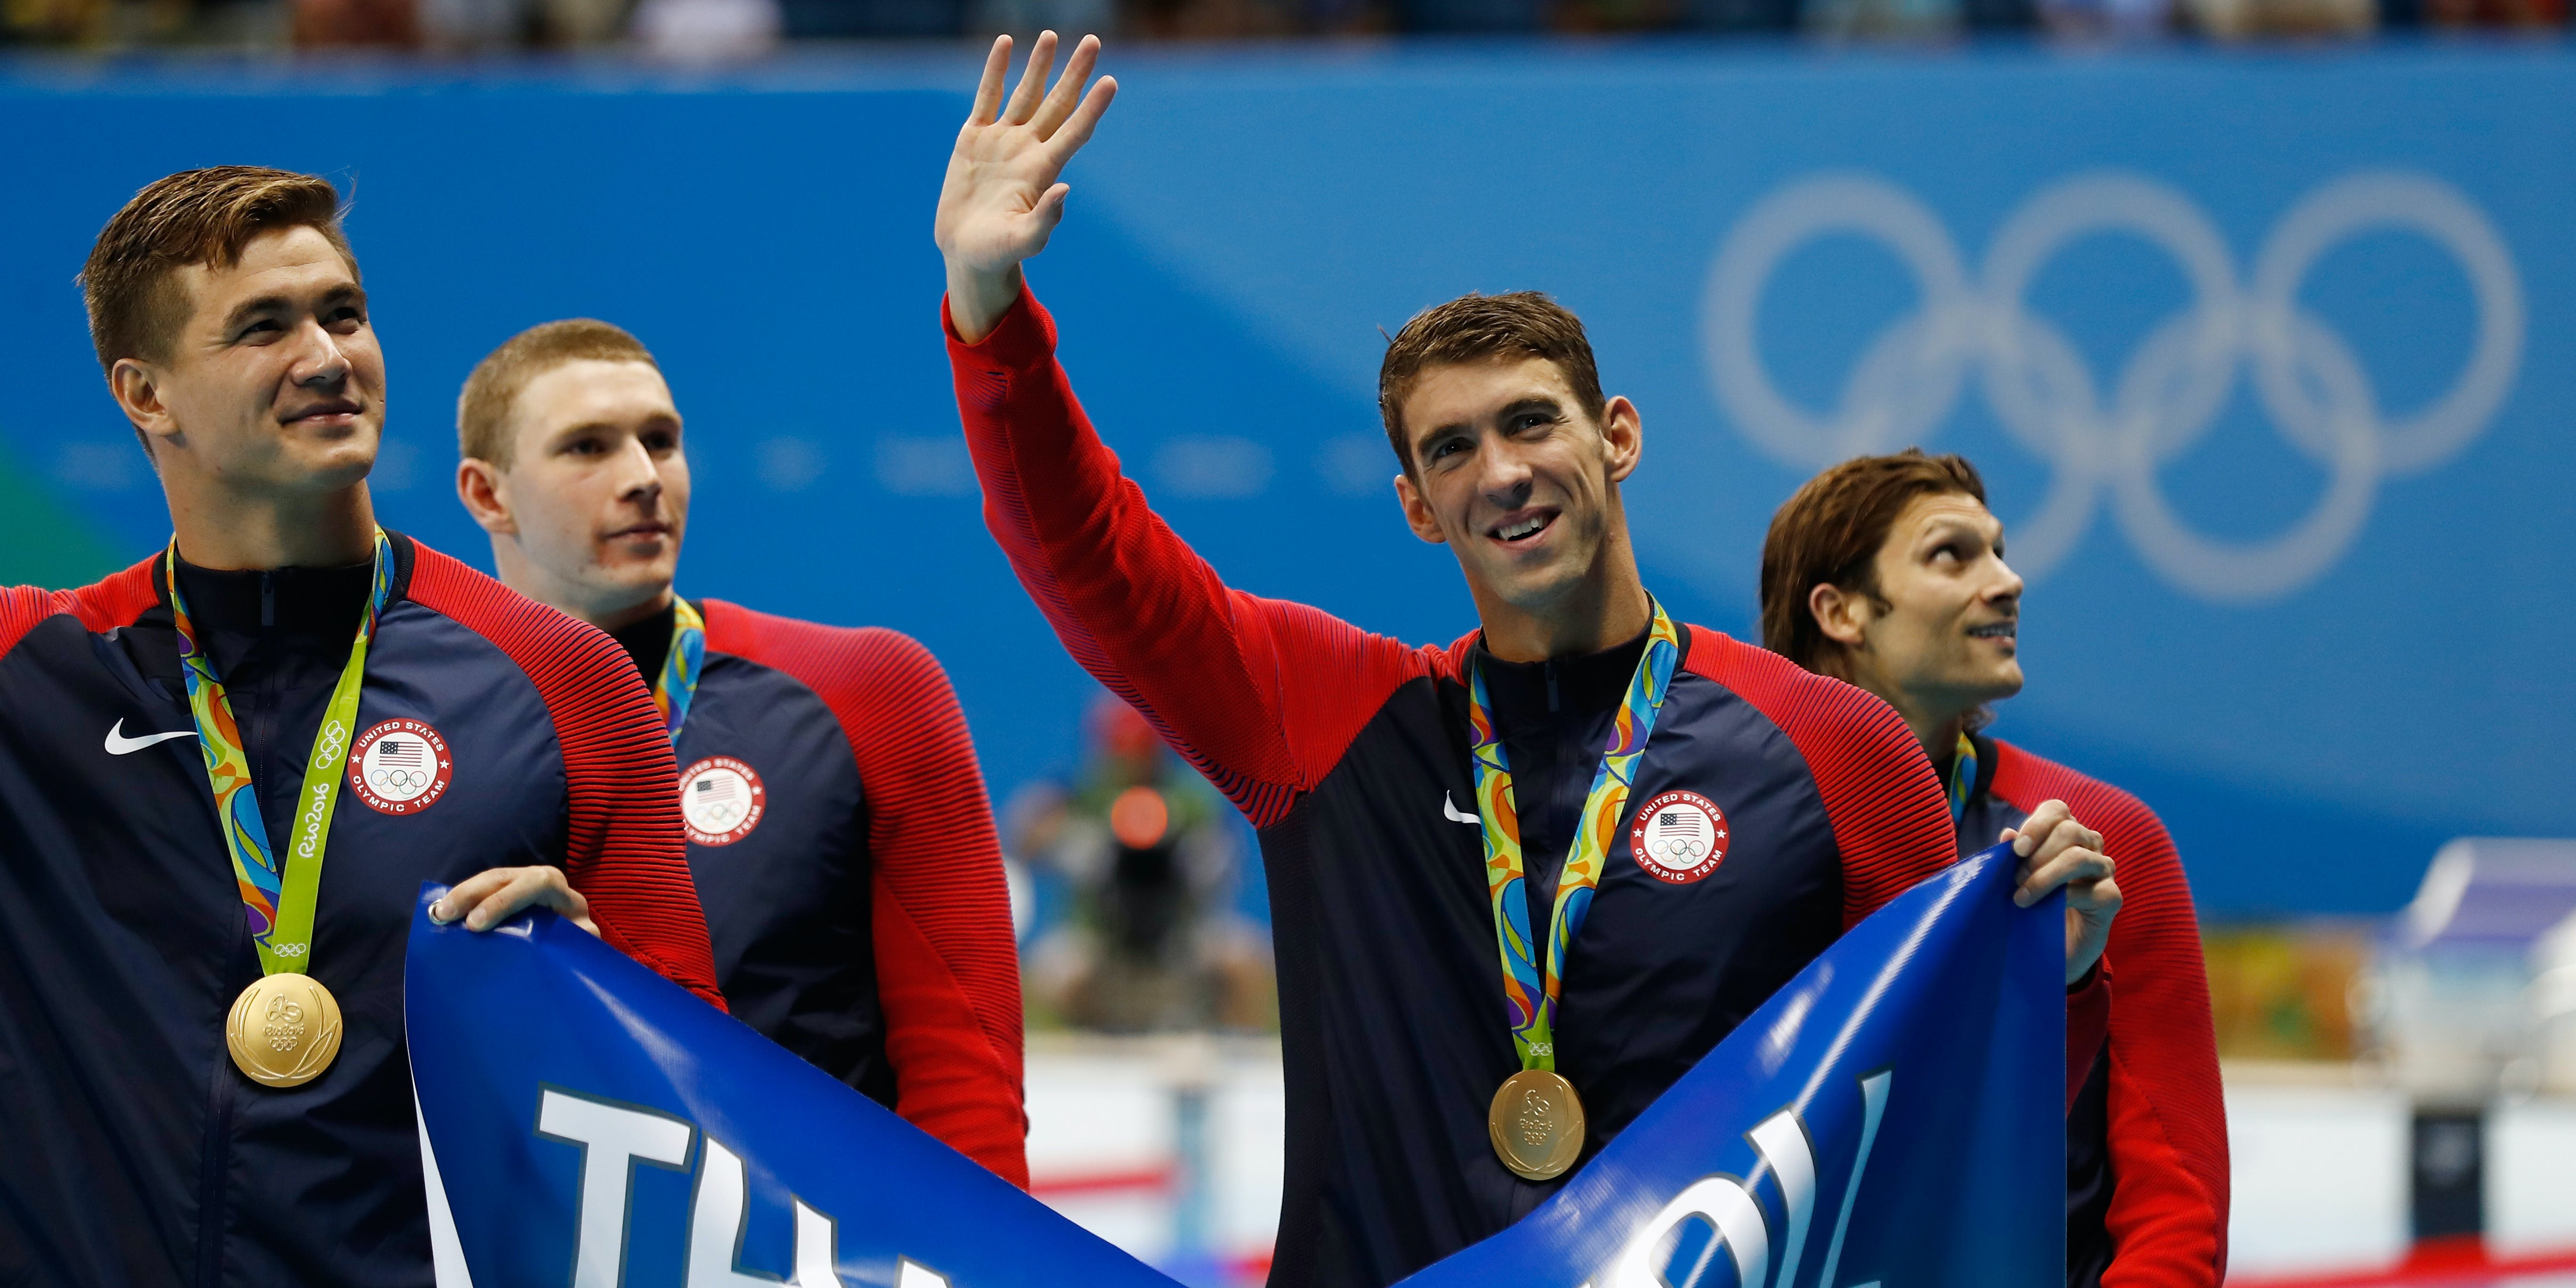 RIO DE JANEIRO, BRAZIL - AUGUST 13:  Gold medalist Michael Phelps of the United States waves to the crowd during the medal ceremony for the Men's 4 x 100m Medley Relay Final on Day 8 of the Rio 2016 Olympic Games at the Olympic Aquatics Stadium on August 13, 2016 in Rio de Janeiro, Brazil.  (Photo by Clive Rose/Getty Images)